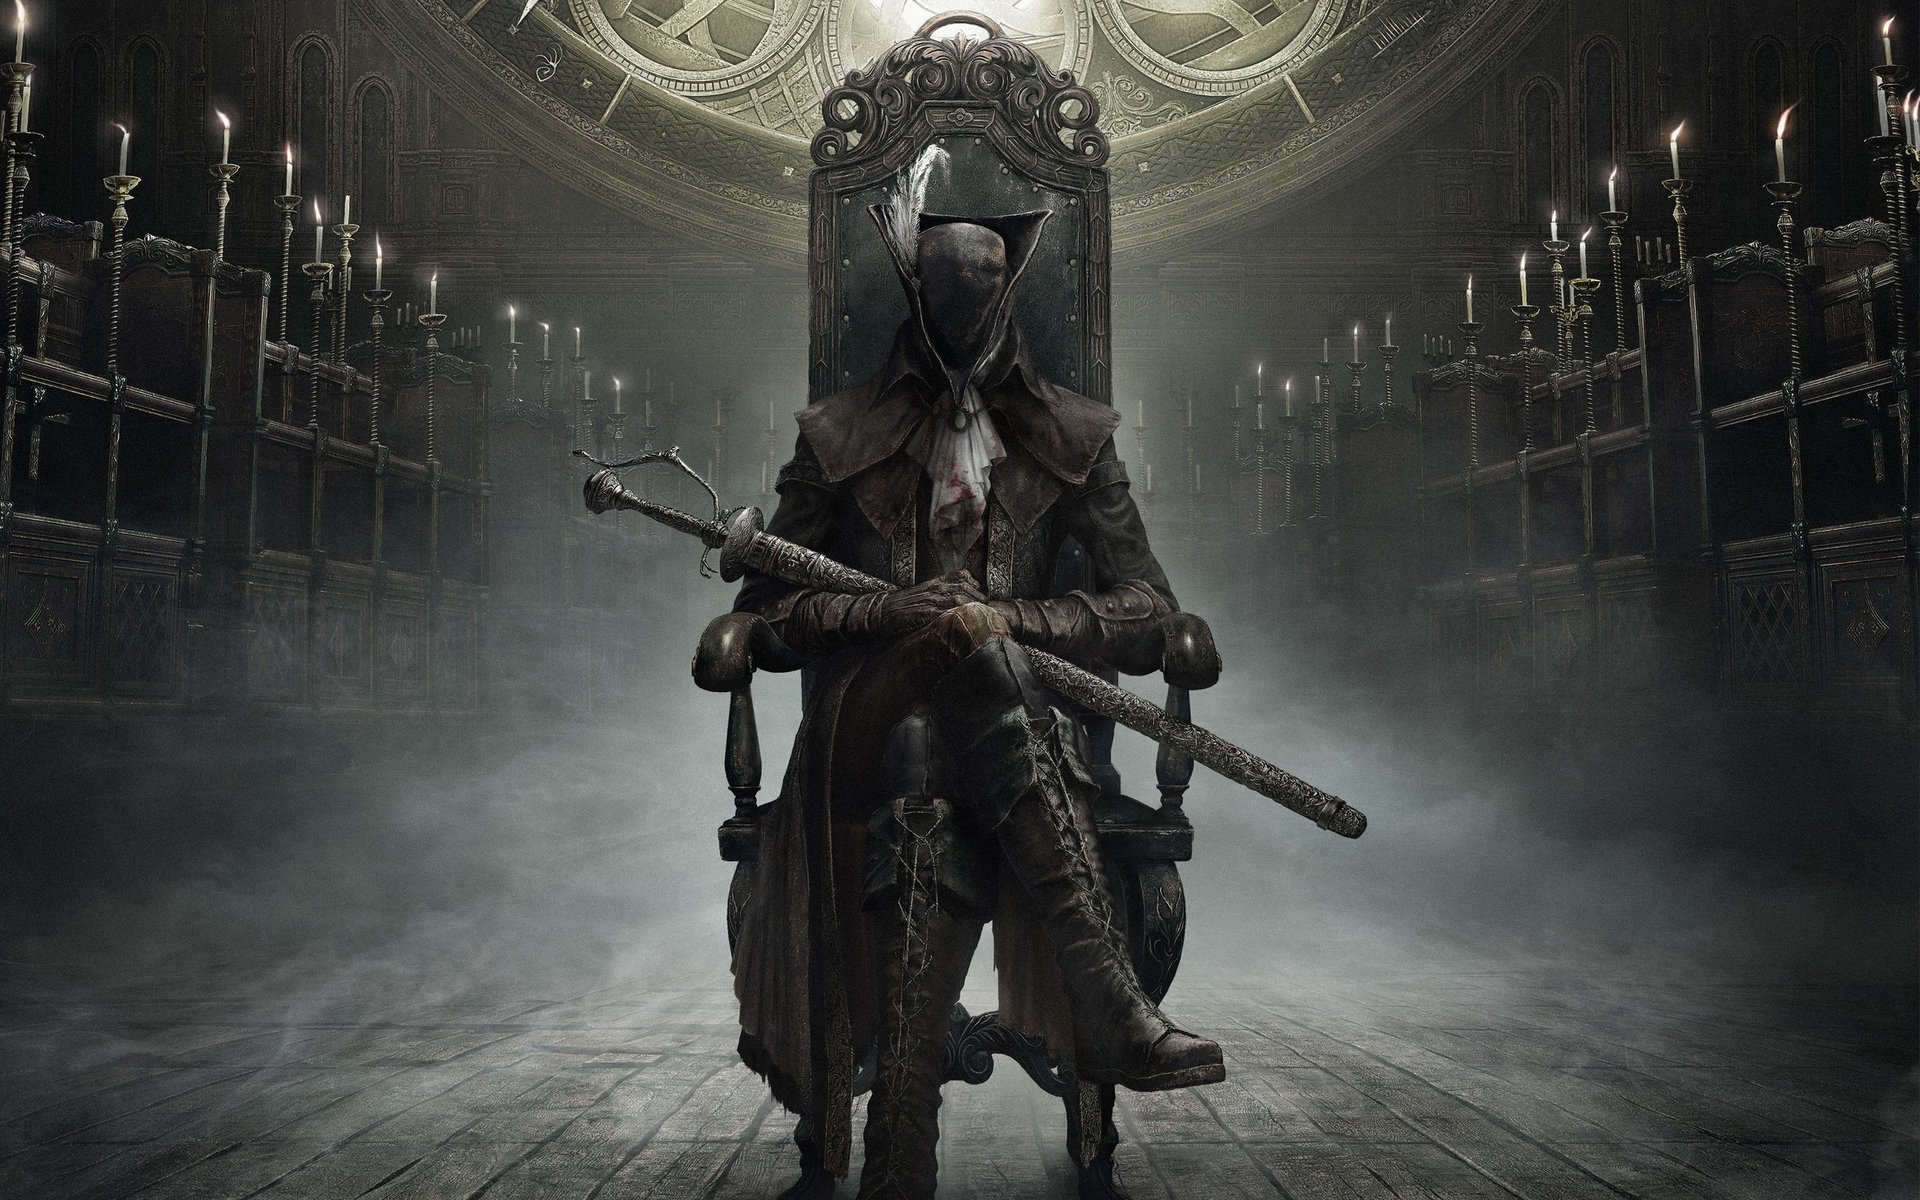 bloodborne-the-old-hunters-2560x1600.jpg